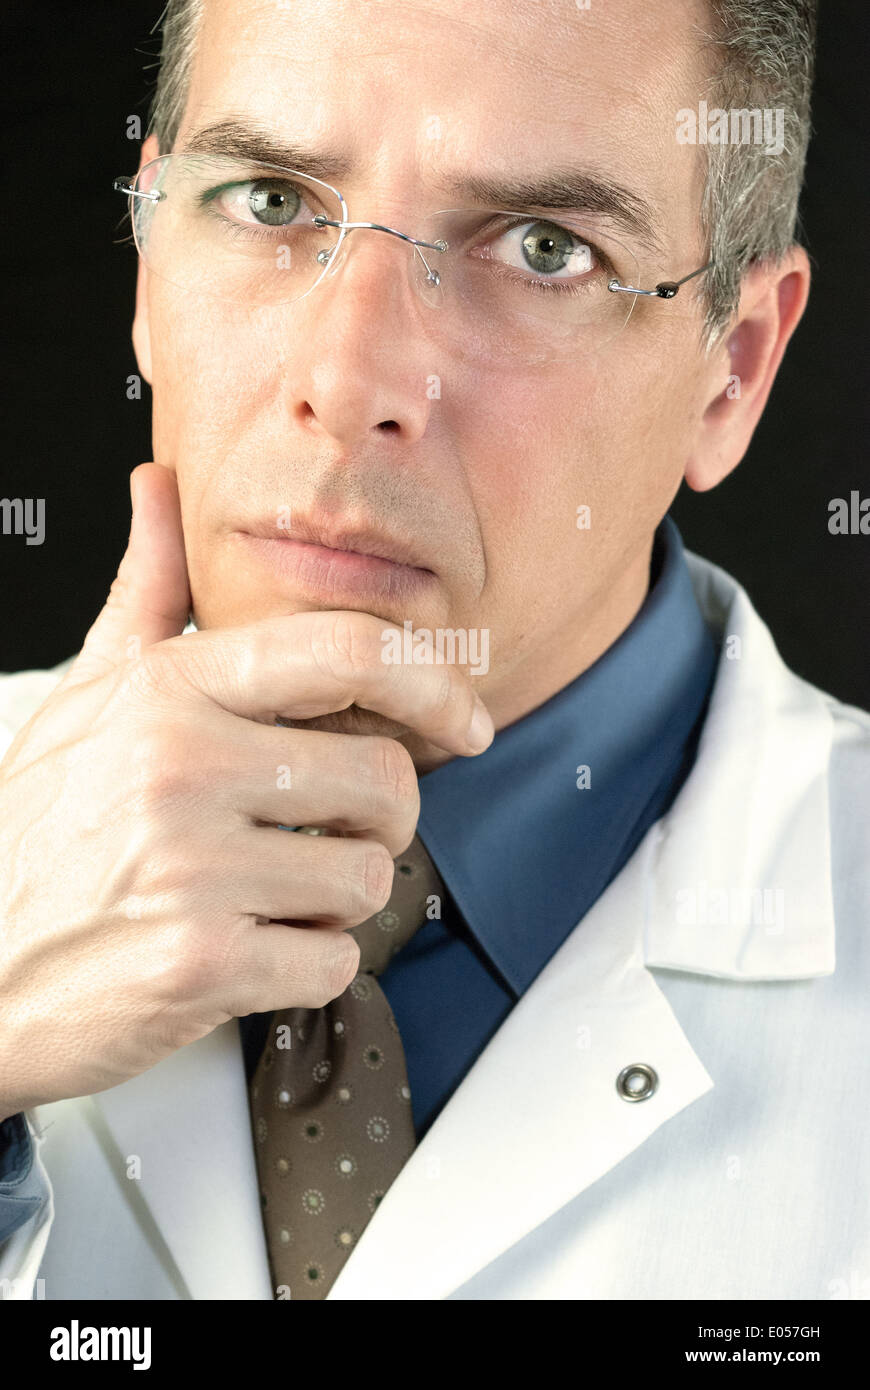 Close-up of a Doctor considering a patients case. - Stock Image